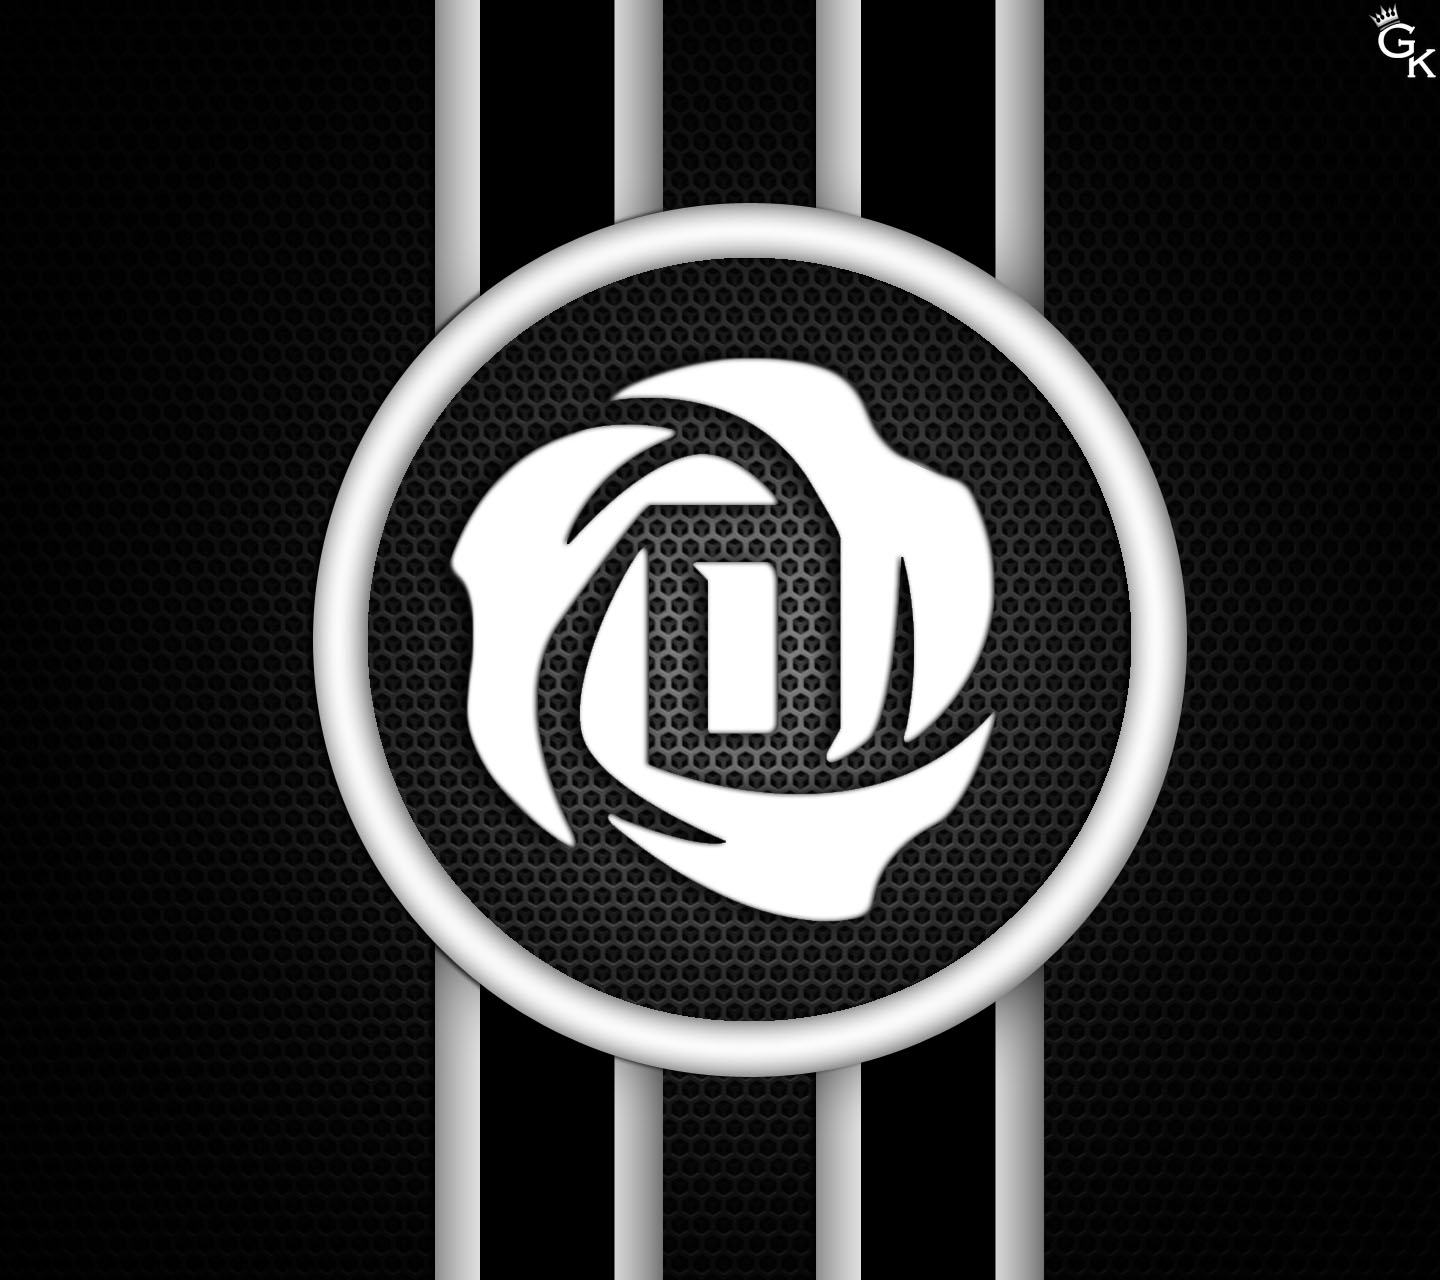 Derrick Rose Emblem (GK) Phone Wallpaper by General-K1MB0